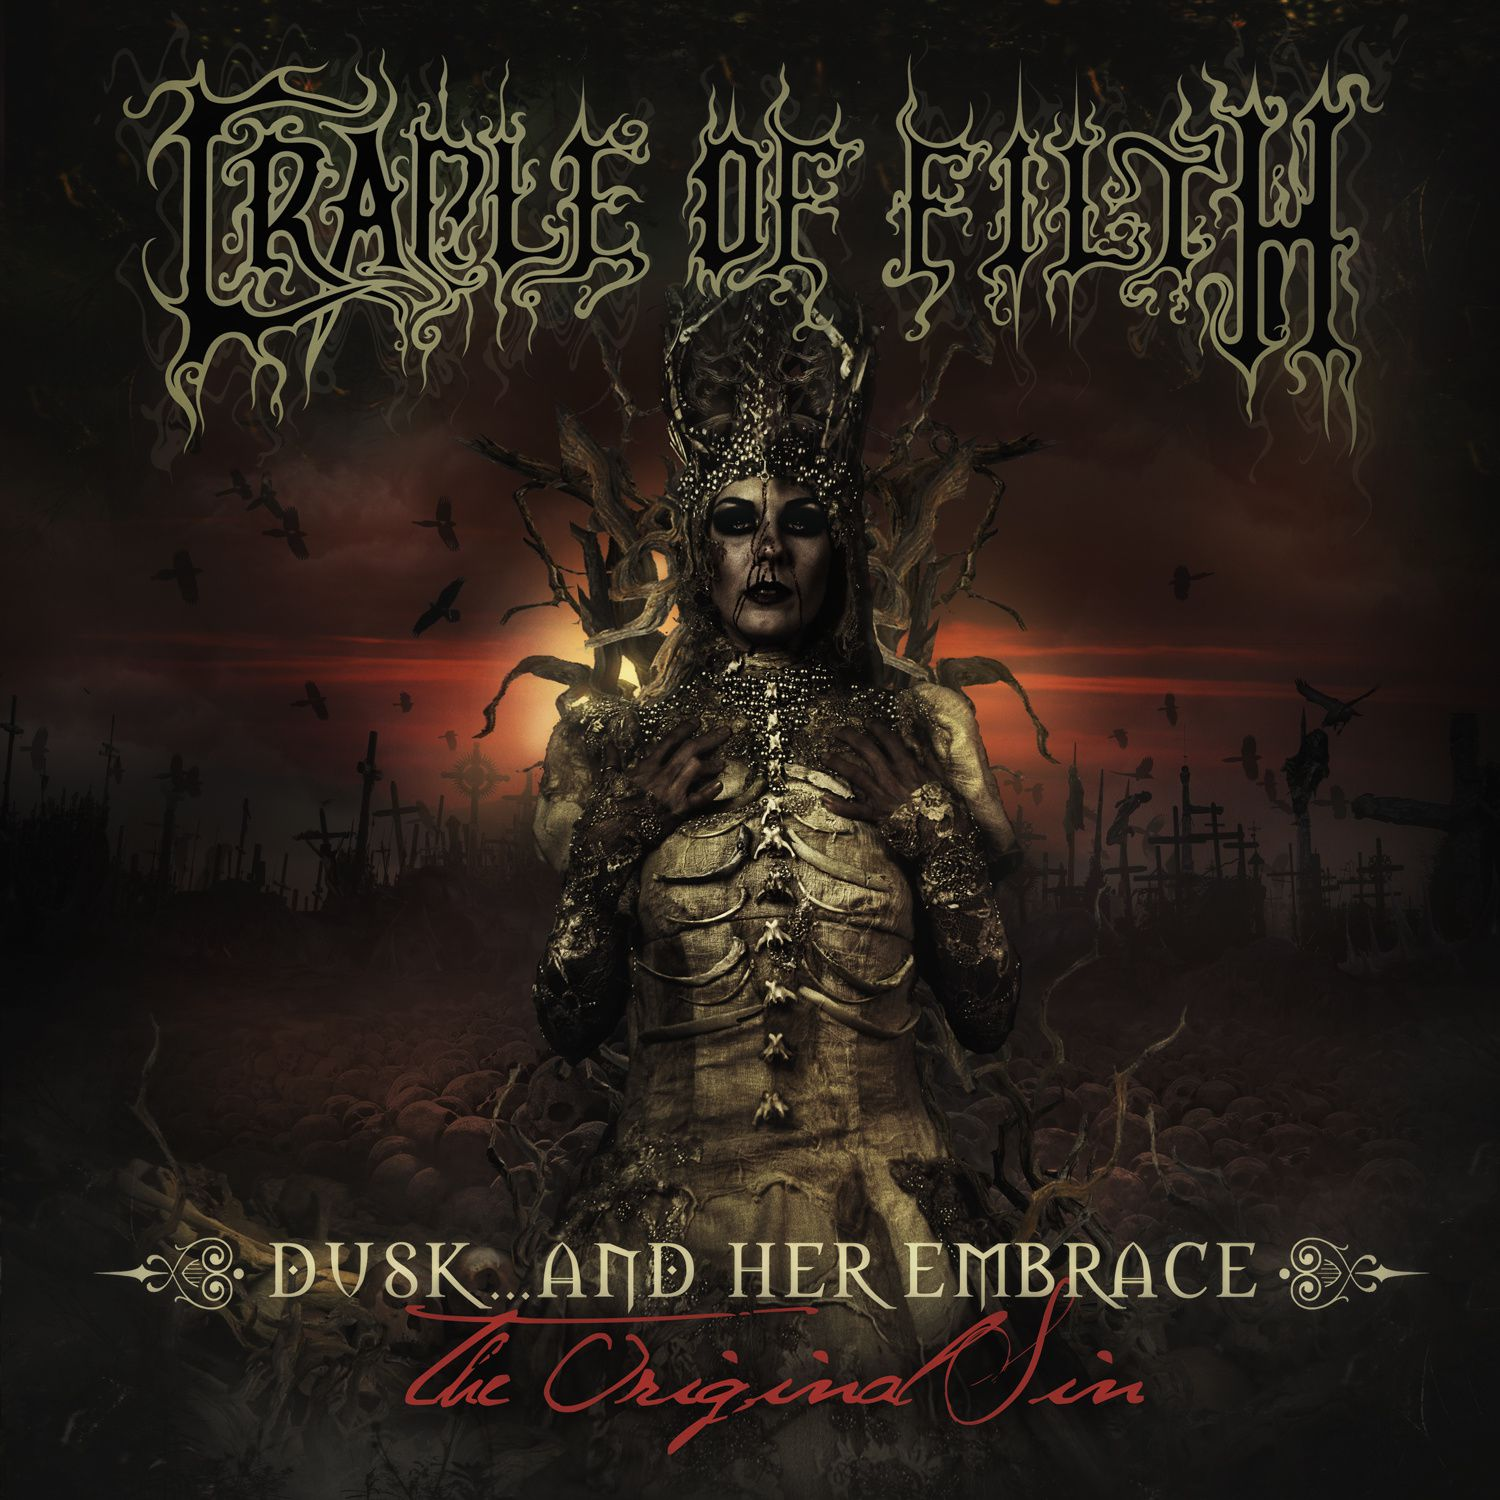 """CD review CRADLE OF FILTH """"Dusk and Her Embrace: The Original Sin"""""""